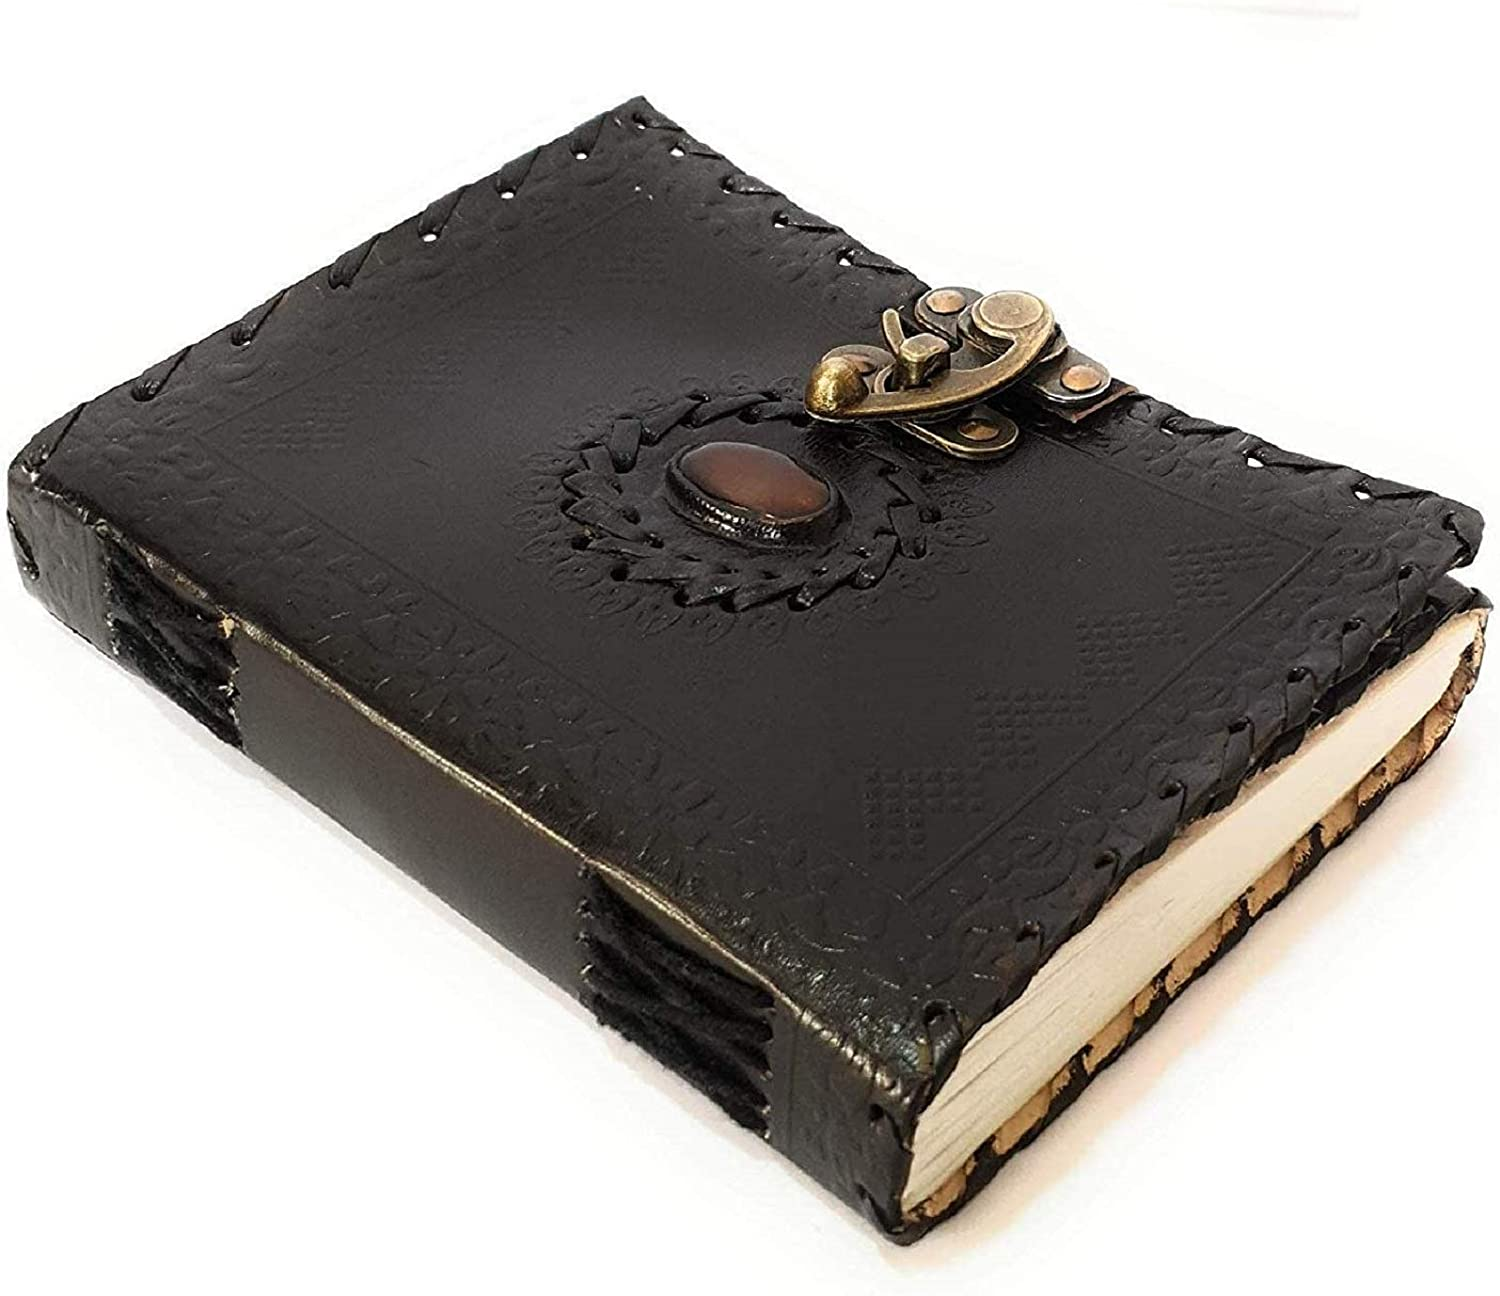 Tuzech Handmade Pure Leather Diary Leather Journal for Men and Women -Office Home Daily Use, Poem Writing with Lock Diary 7 Inches and Luck Stone (Black)